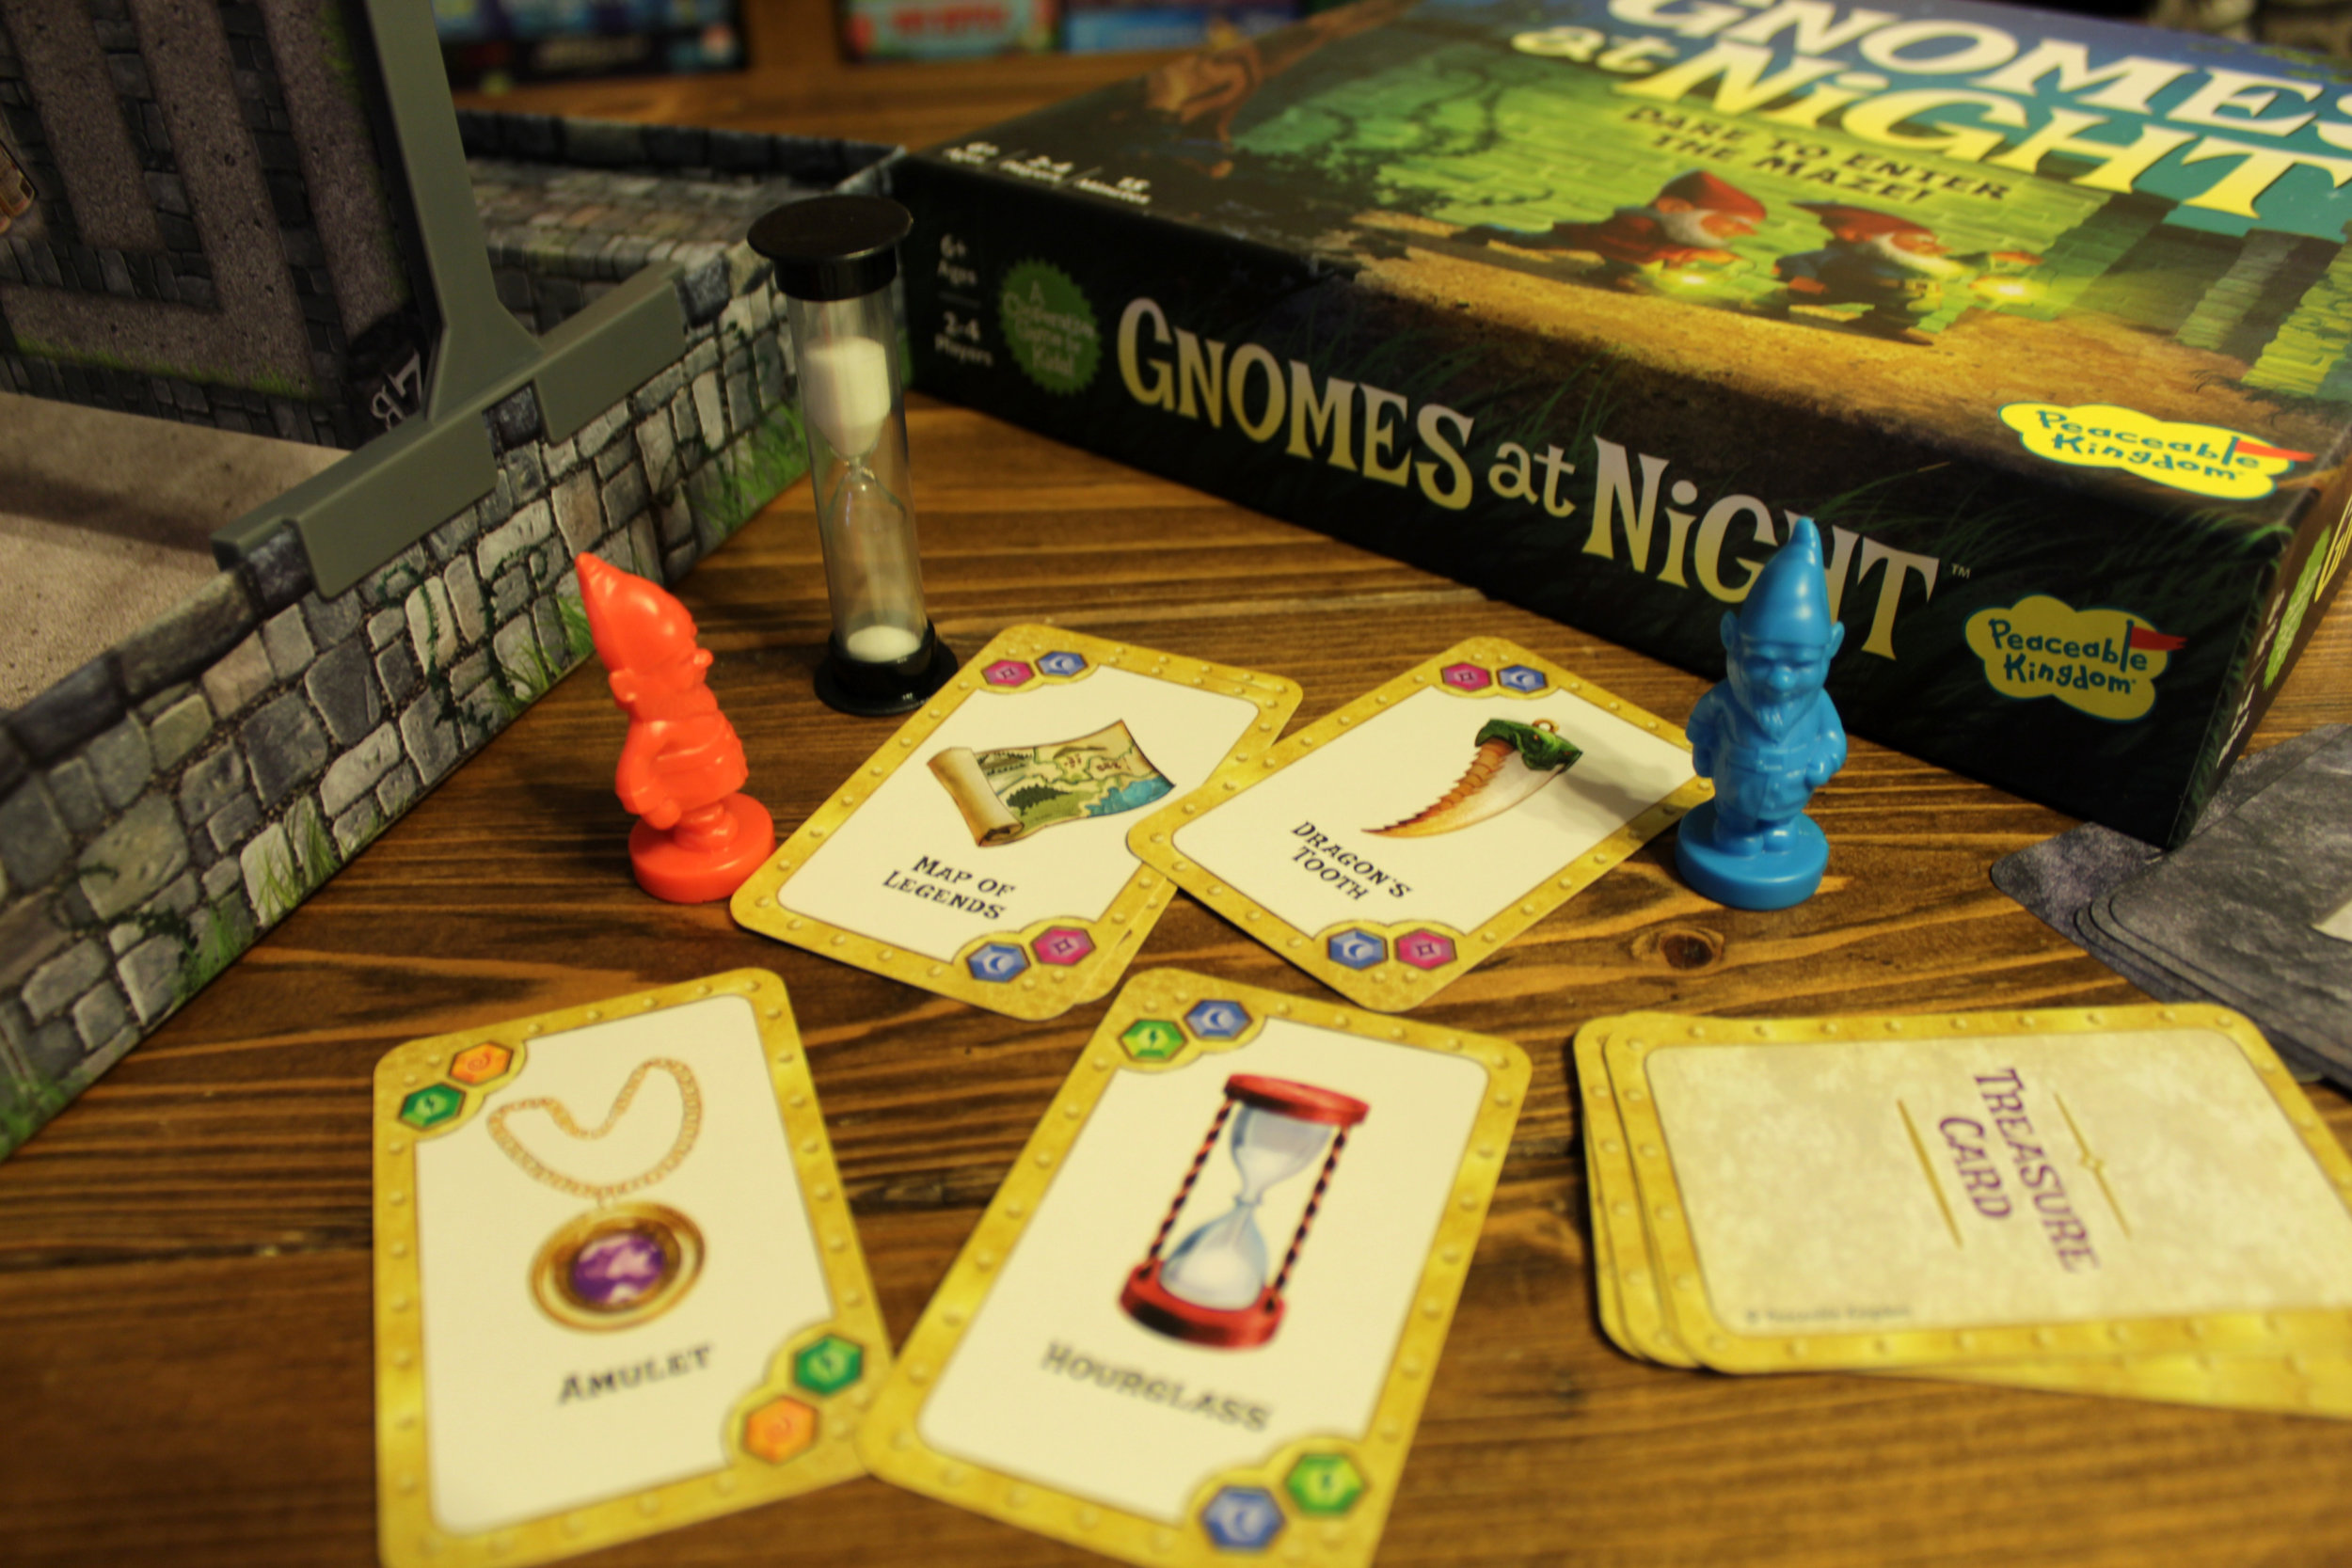 Gnomes at Night by Peaceable Kingdom - Cooperative Family Board Game